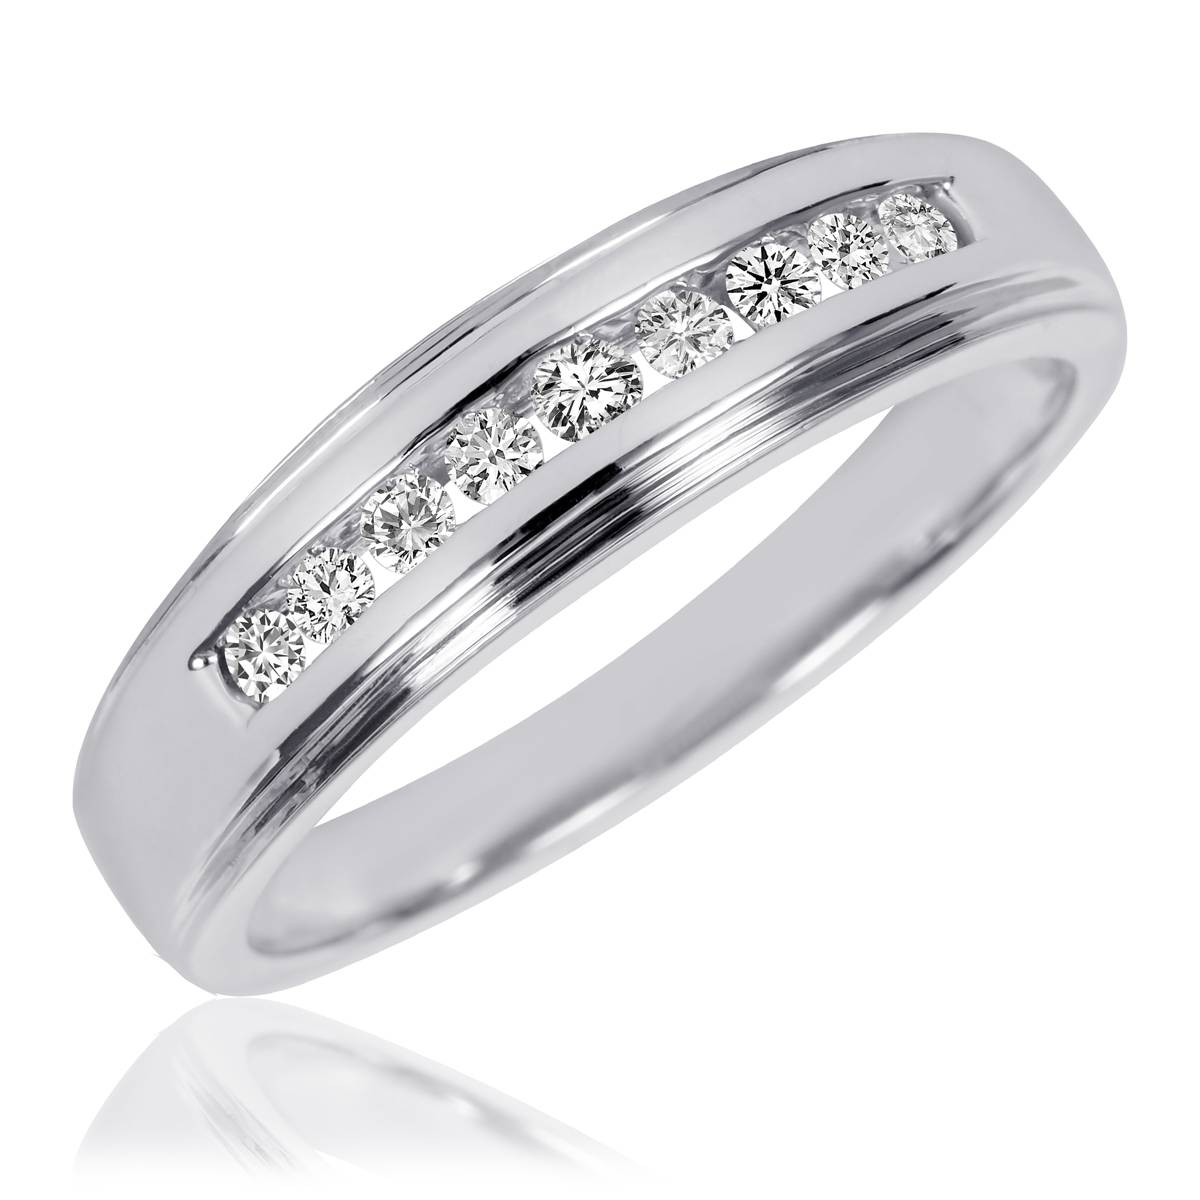 1 Carat T.w. Diamond Trio Matching Wedding Ring Set 10K White Gold Pertaining To Mens White Gold Wedding Bands With Diamonds (Gallery 3 of 15)